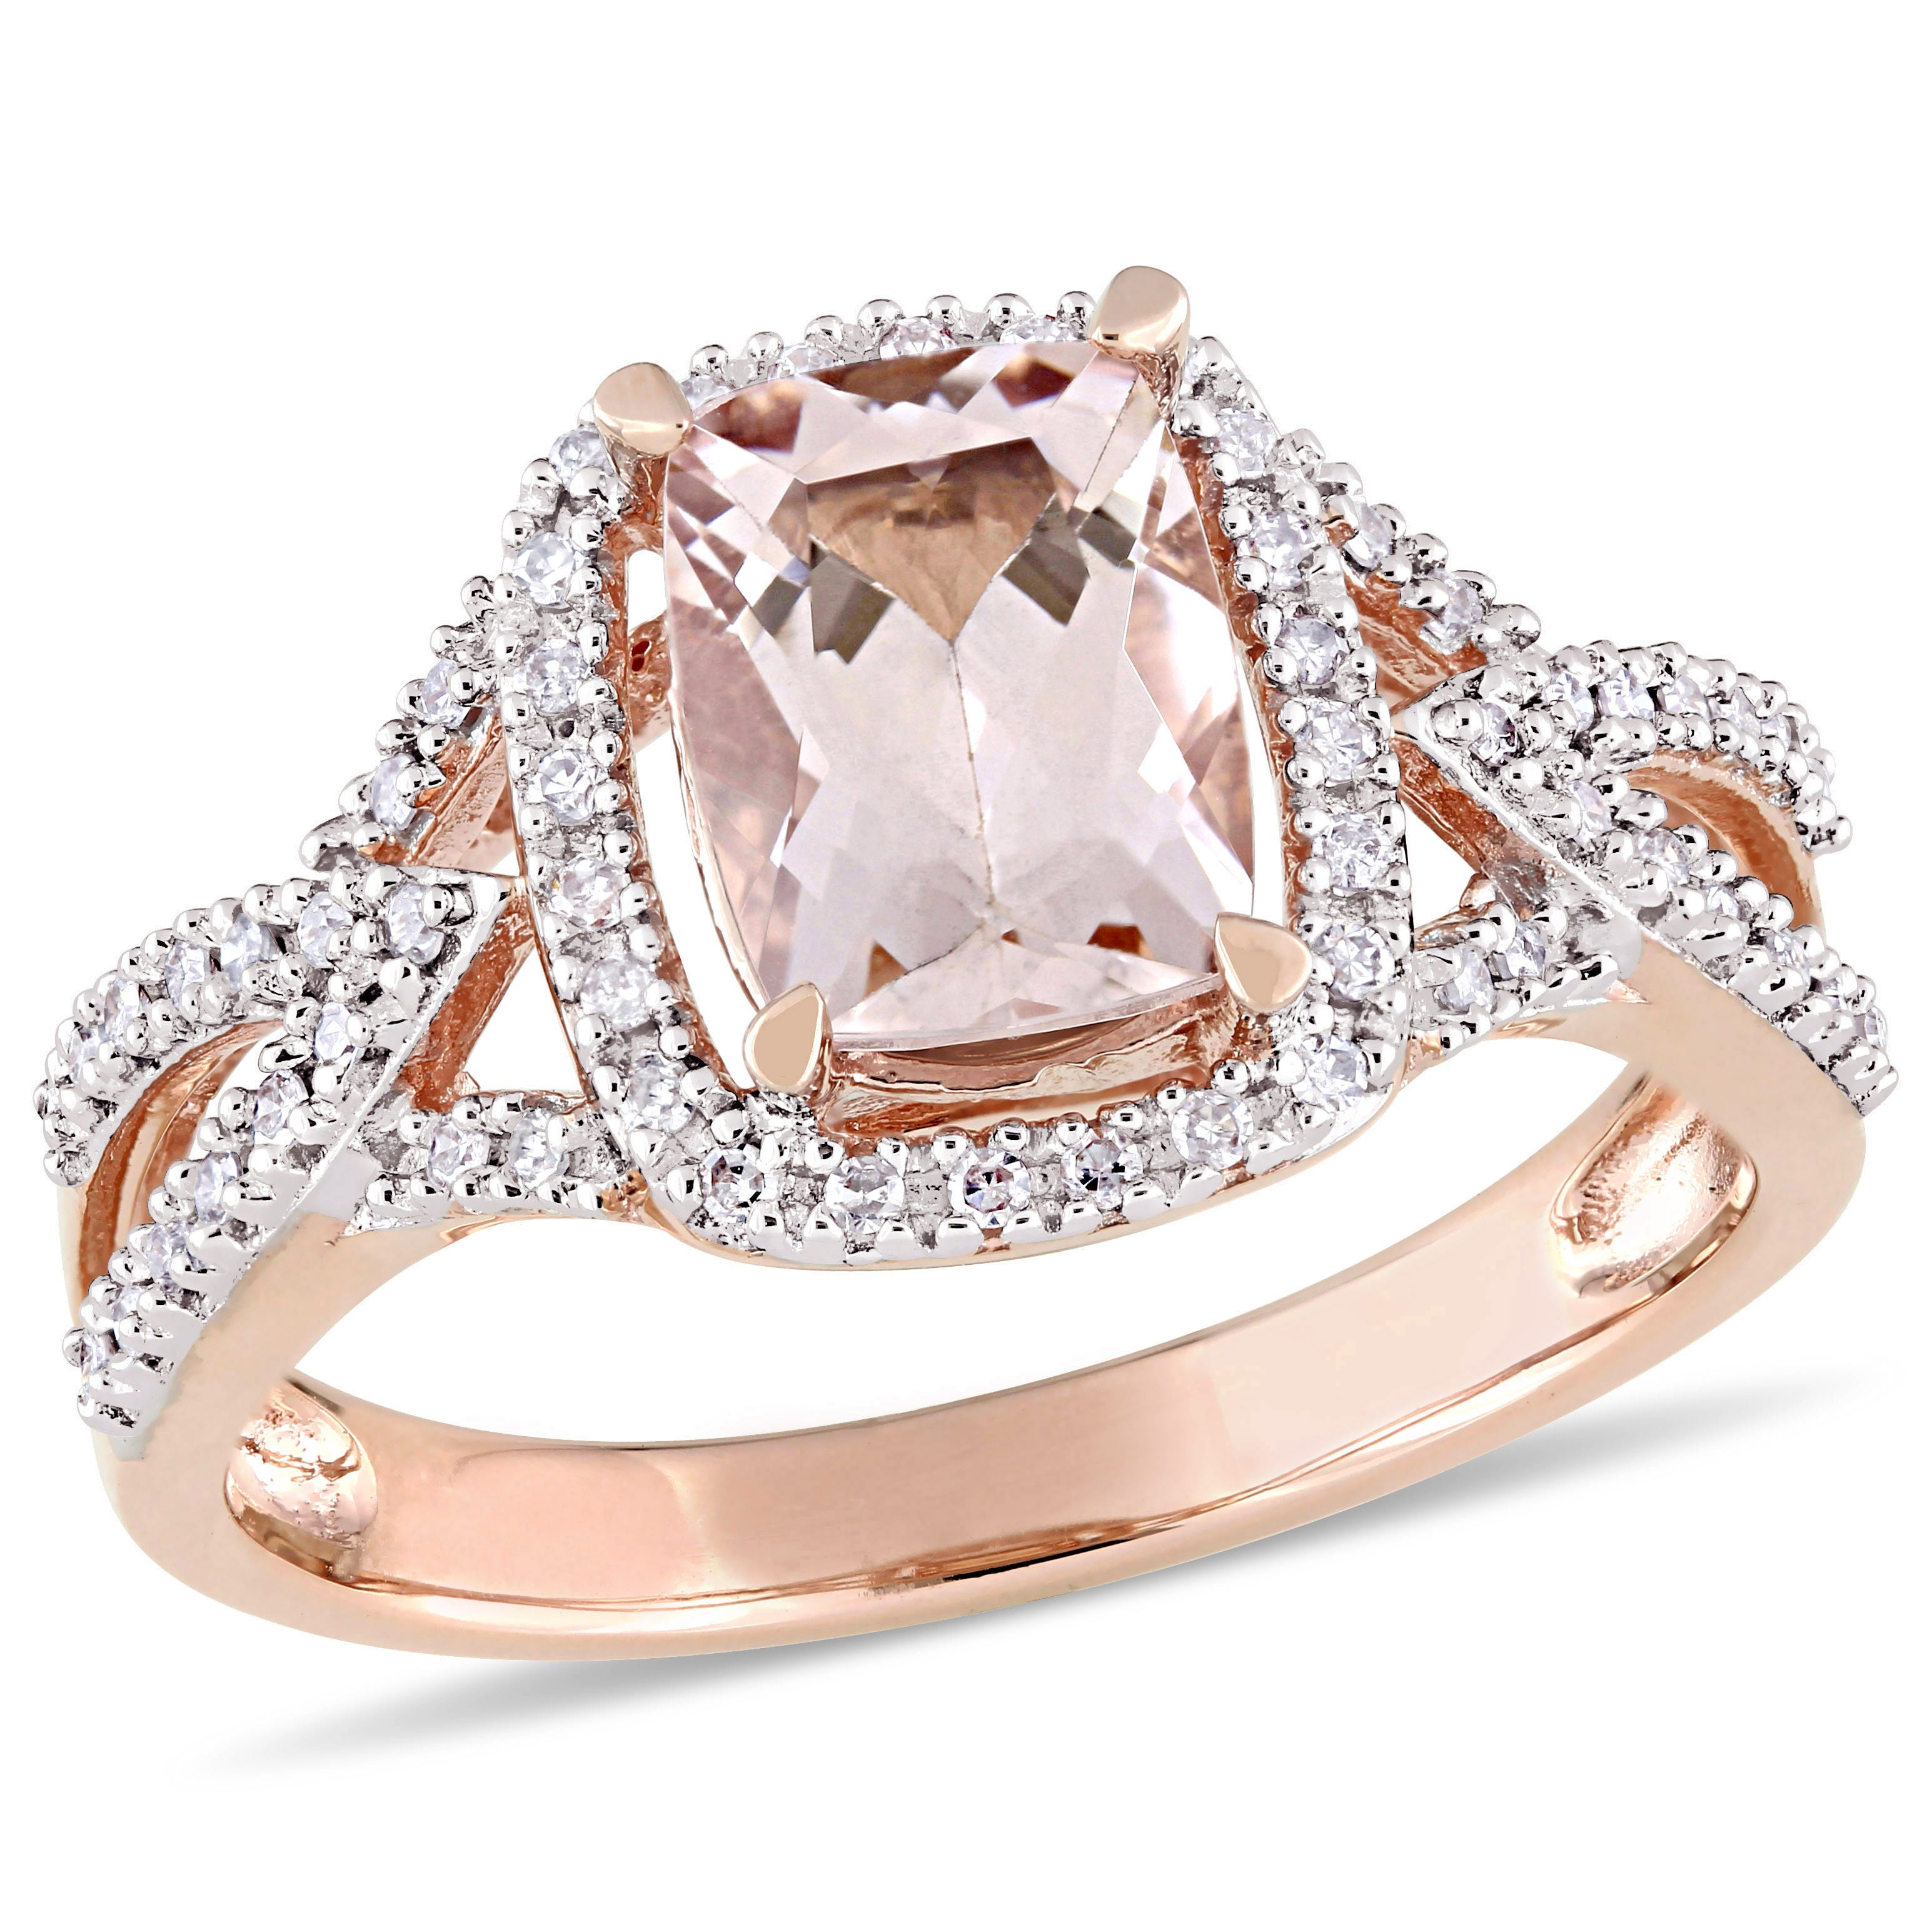 Elongated Cushion Cut Morganite Diamond Halo Engagement Ring In 10k Rose Gold